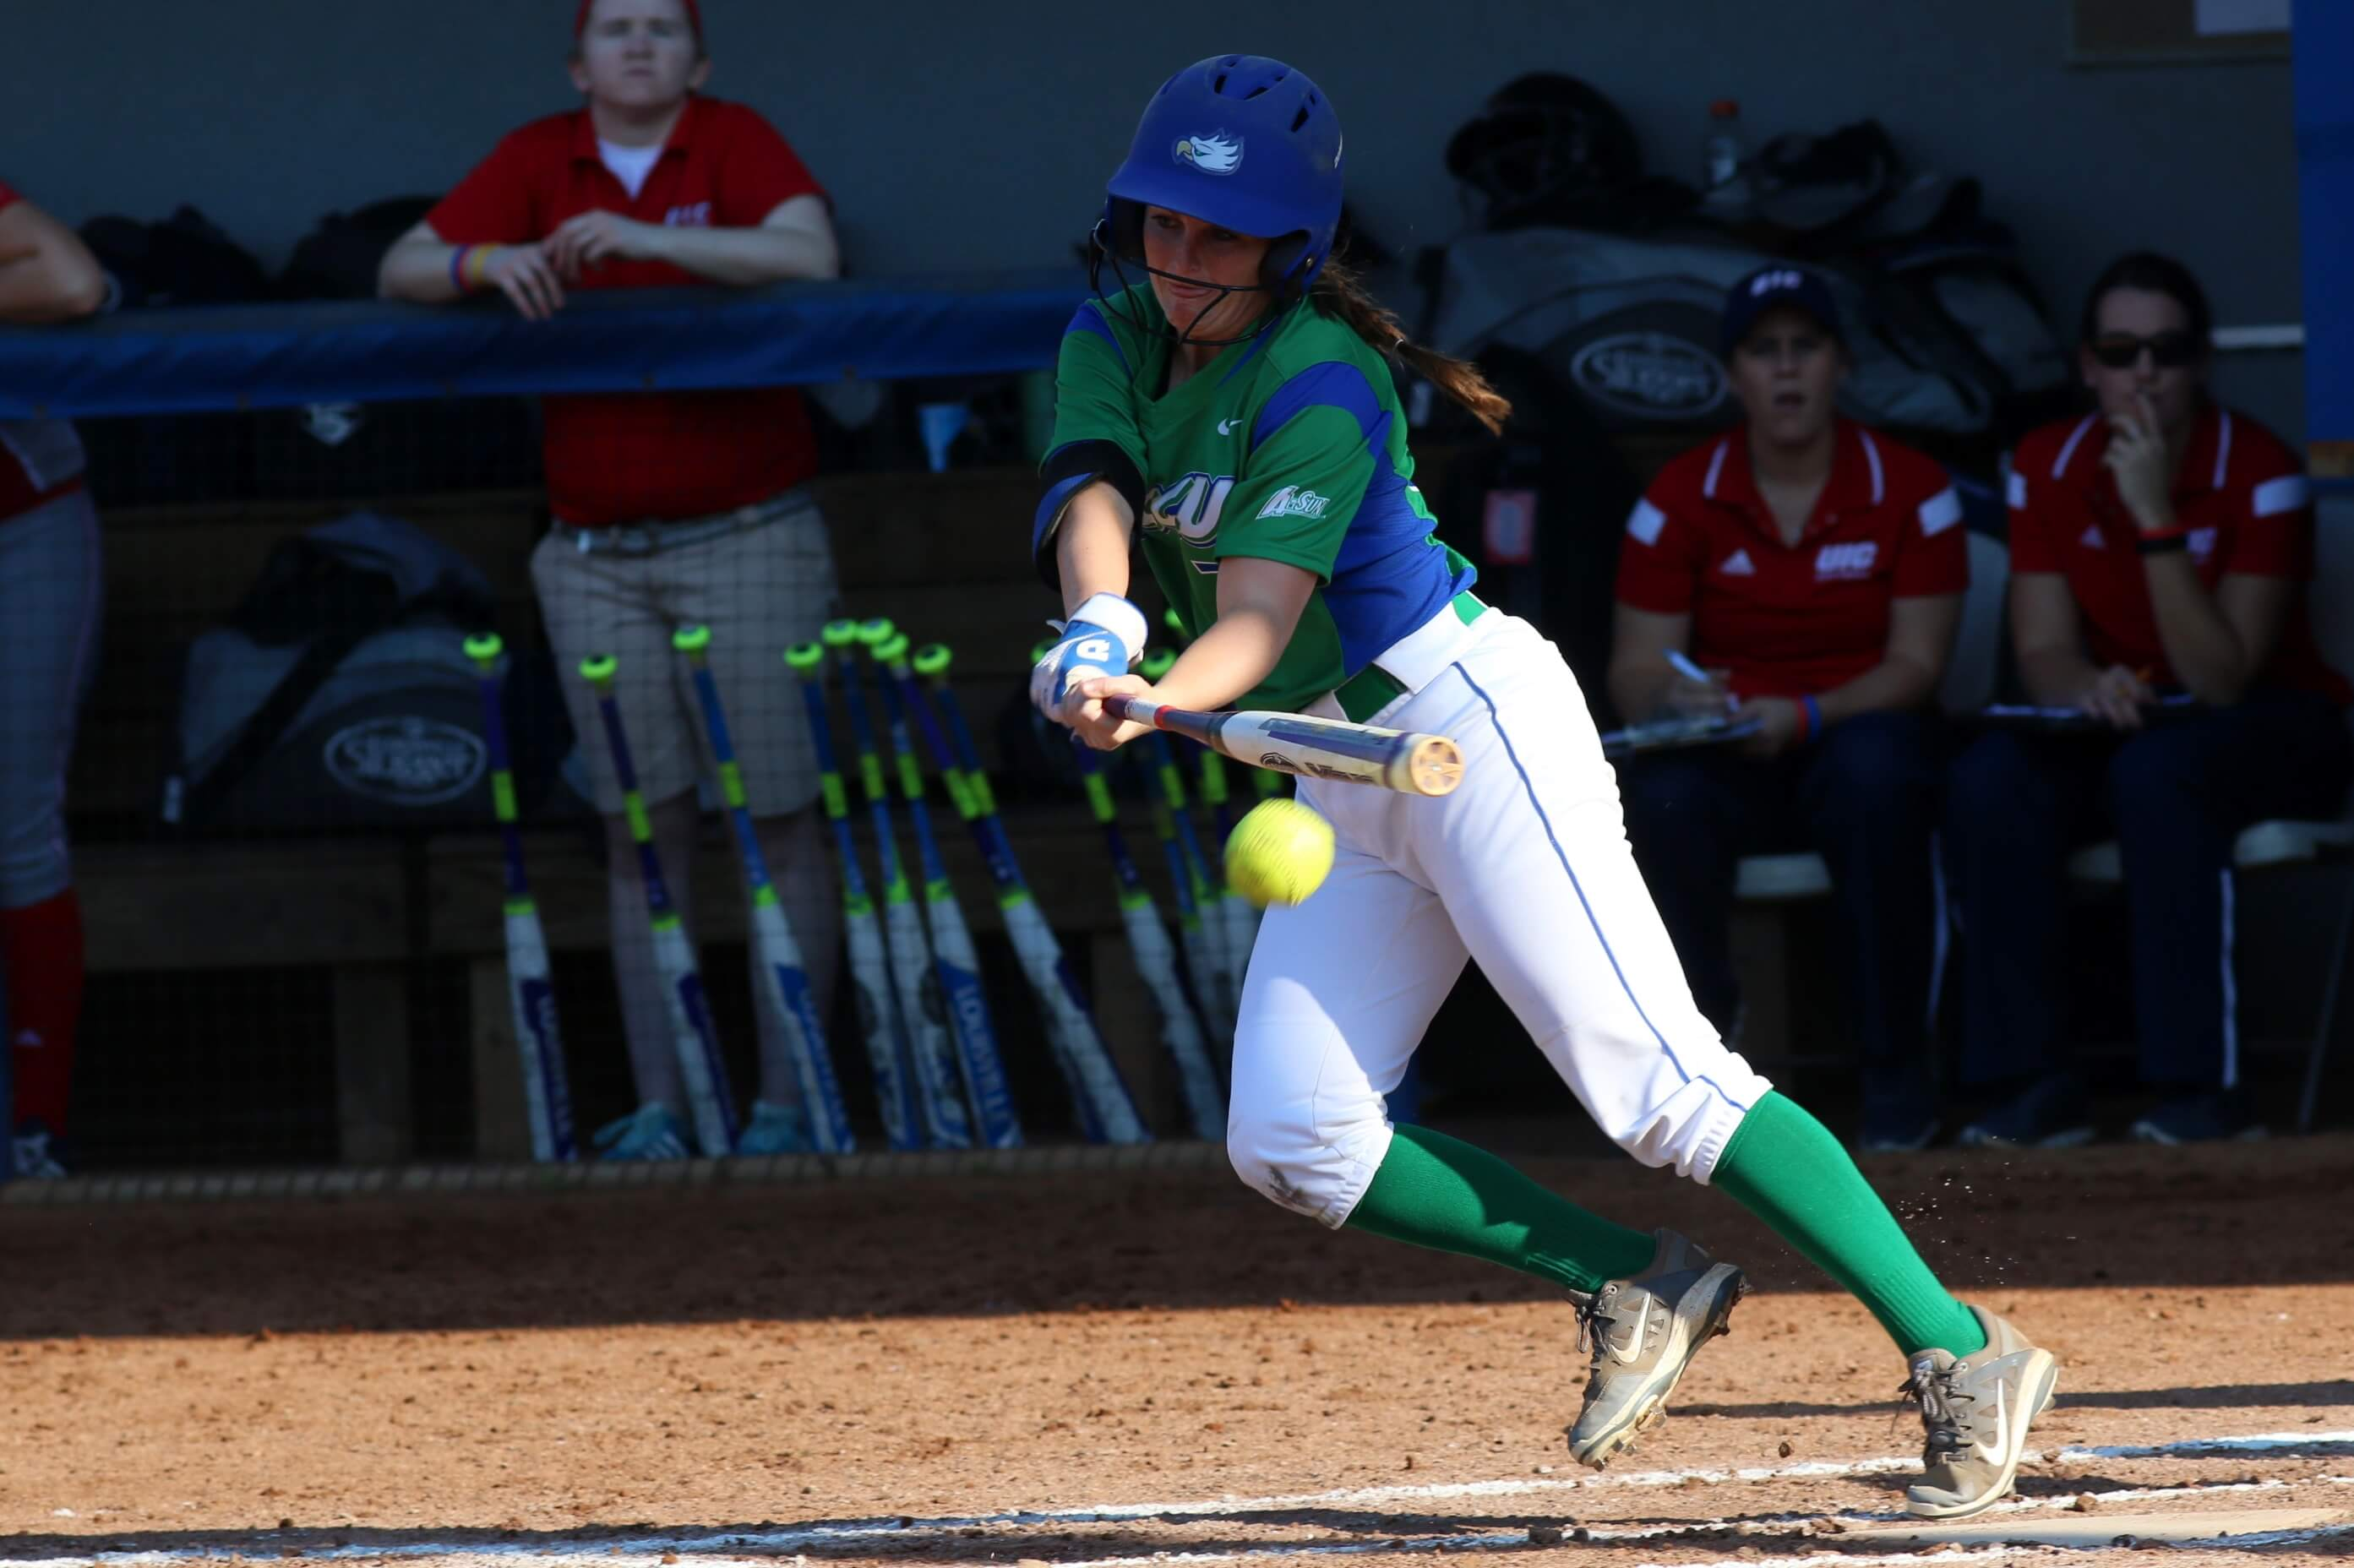 FGCU softball earns first win of the season against Chicago-Illinois